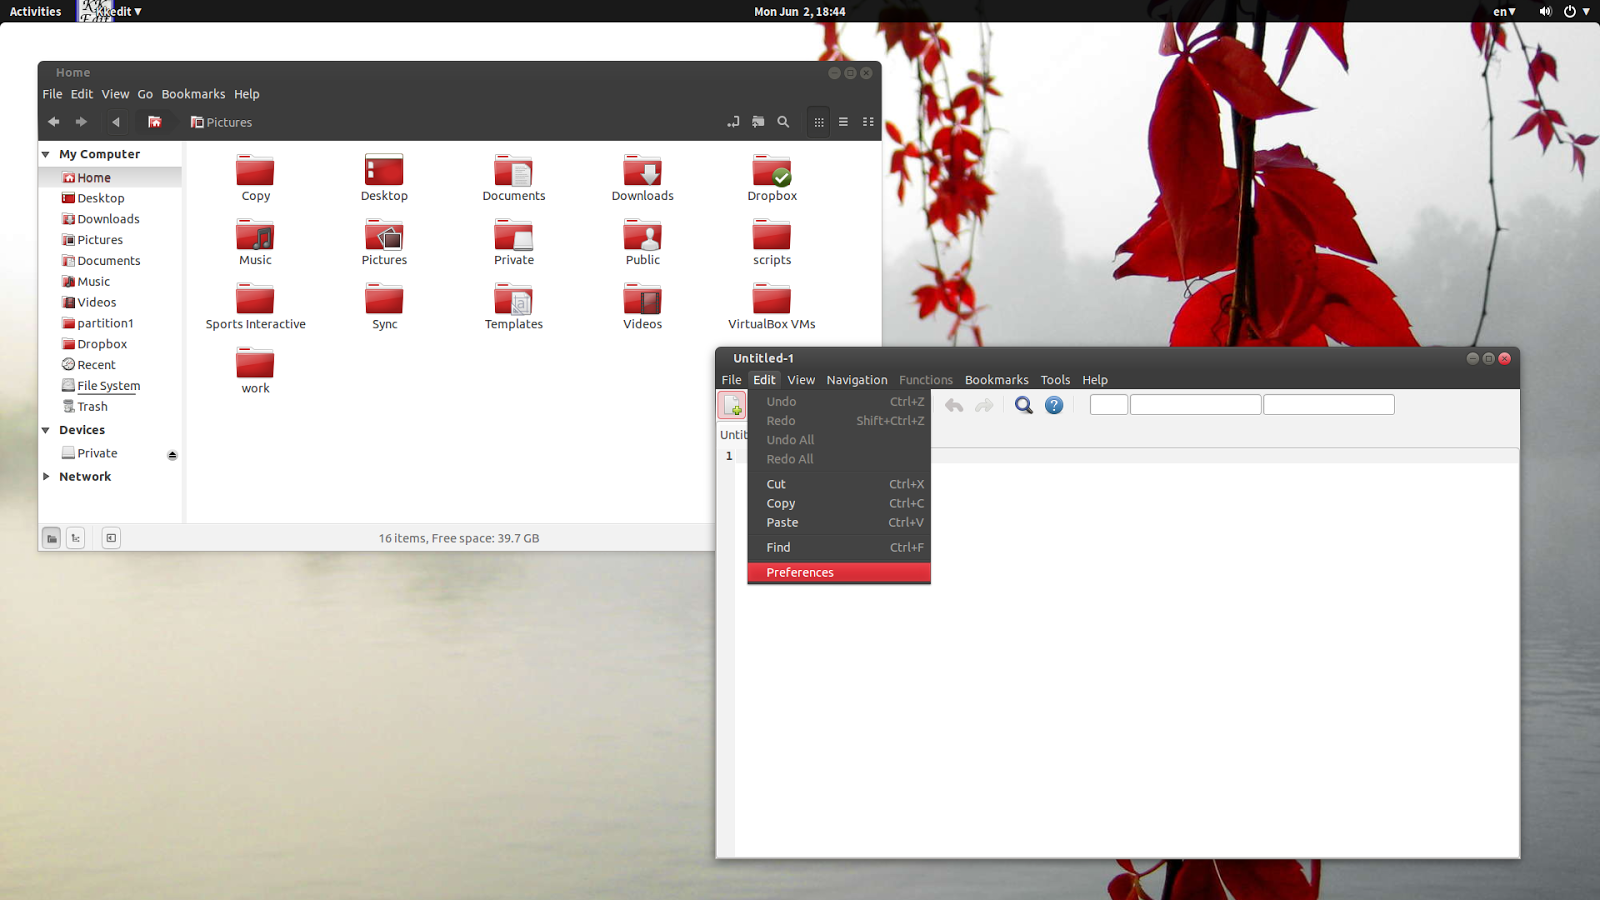 Google themes ubuntu 14.04 - Ambiance Red Under Gnome Shell Kkedit A Gtk2 App Uses Dark Menus With The Default Ambiance Theme The App Uses A Light Menu